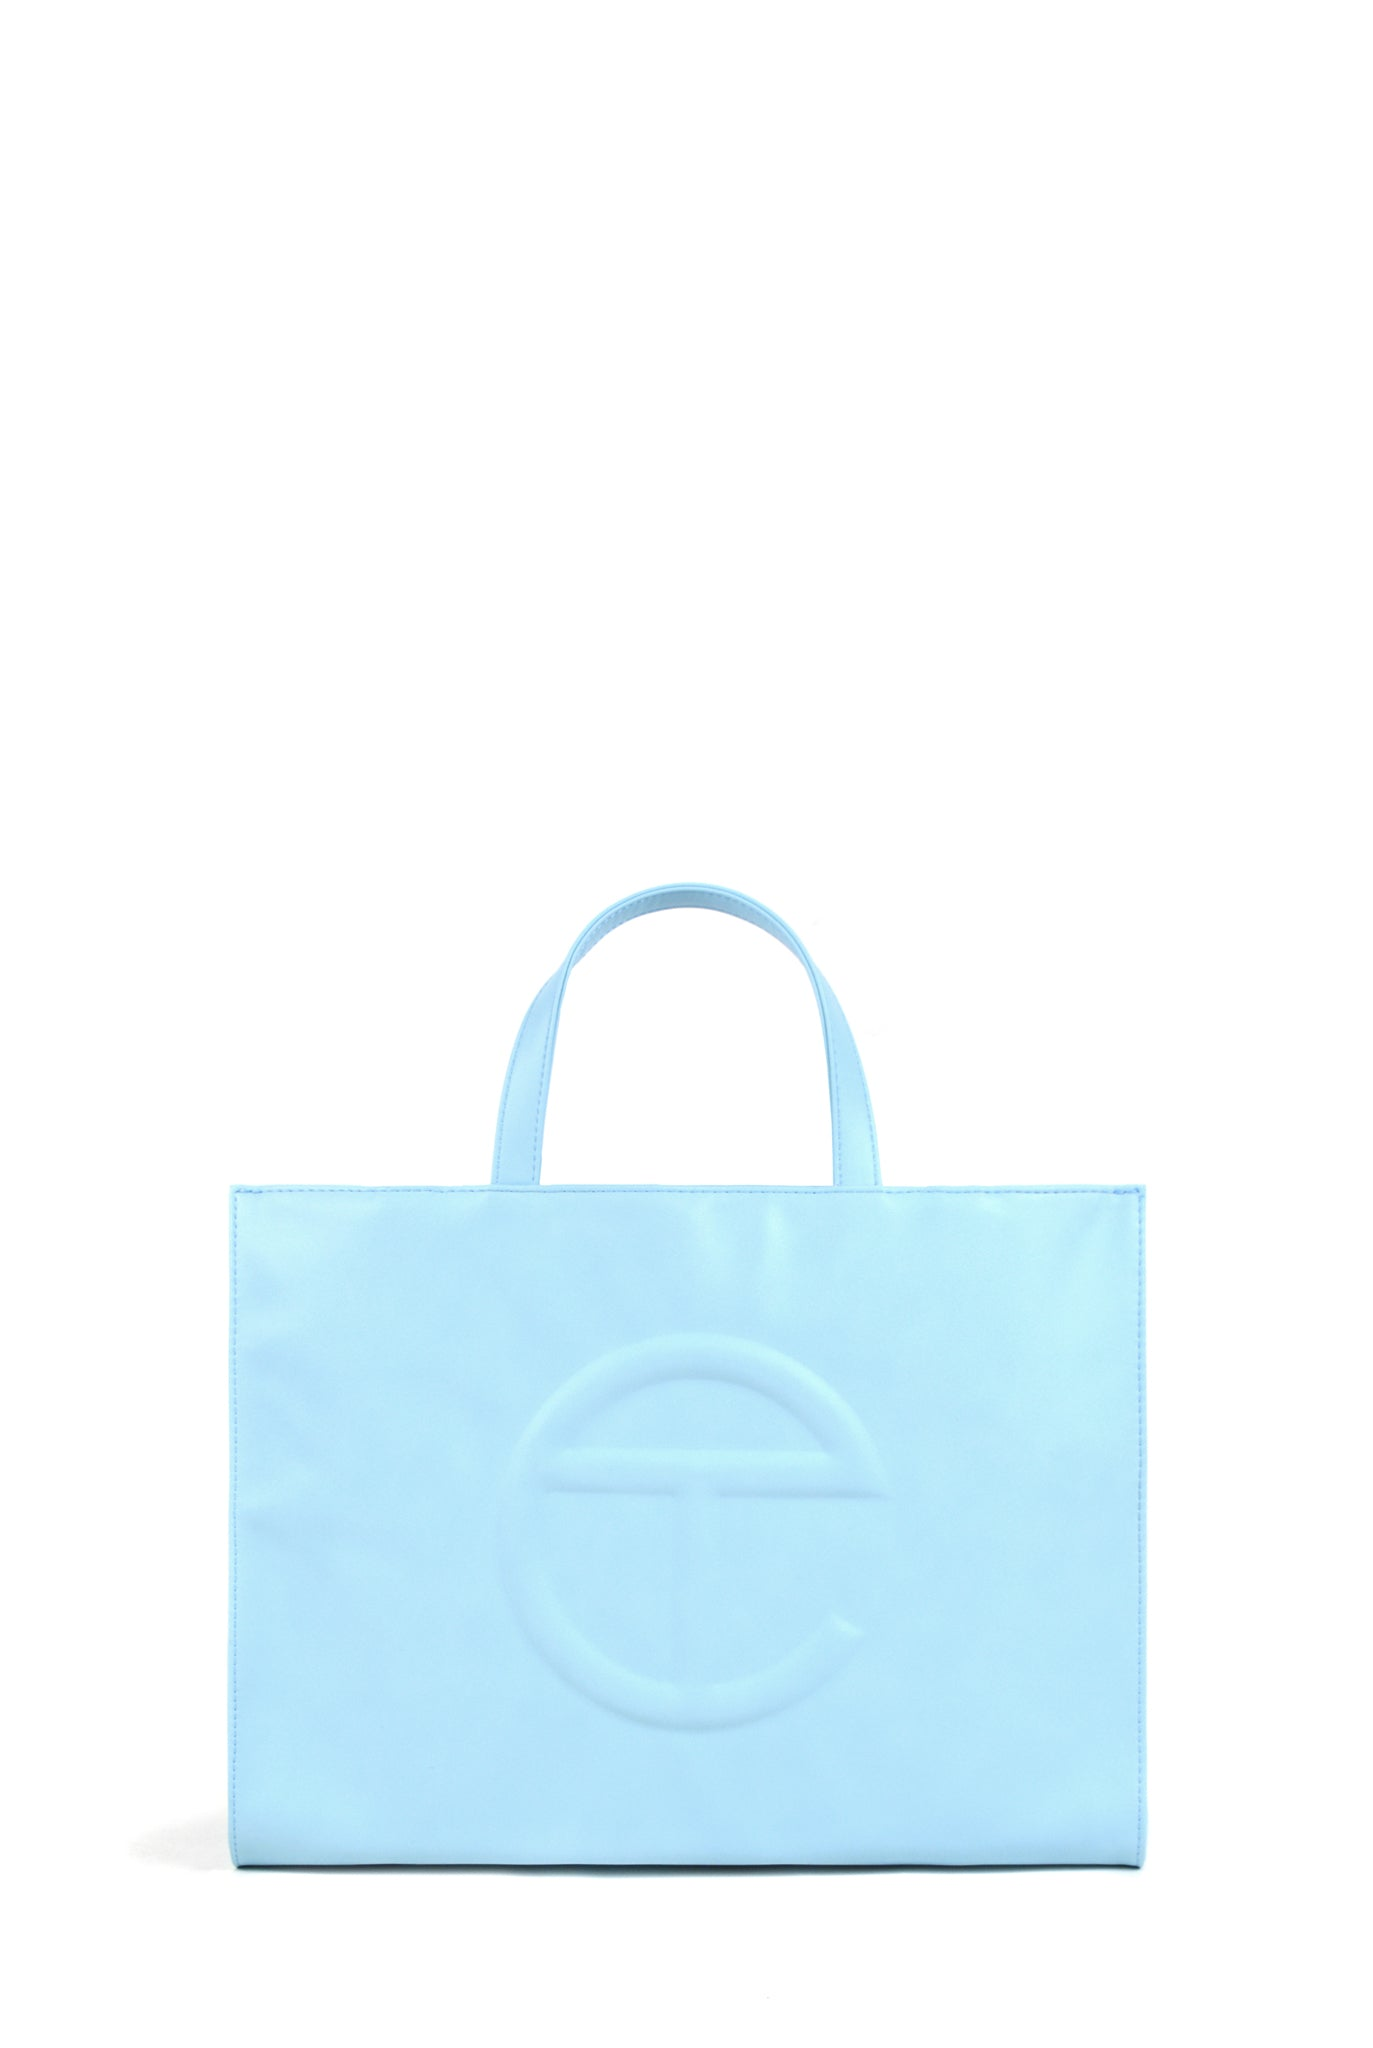 Telfar Medium Shopping Bag, Pool Blue